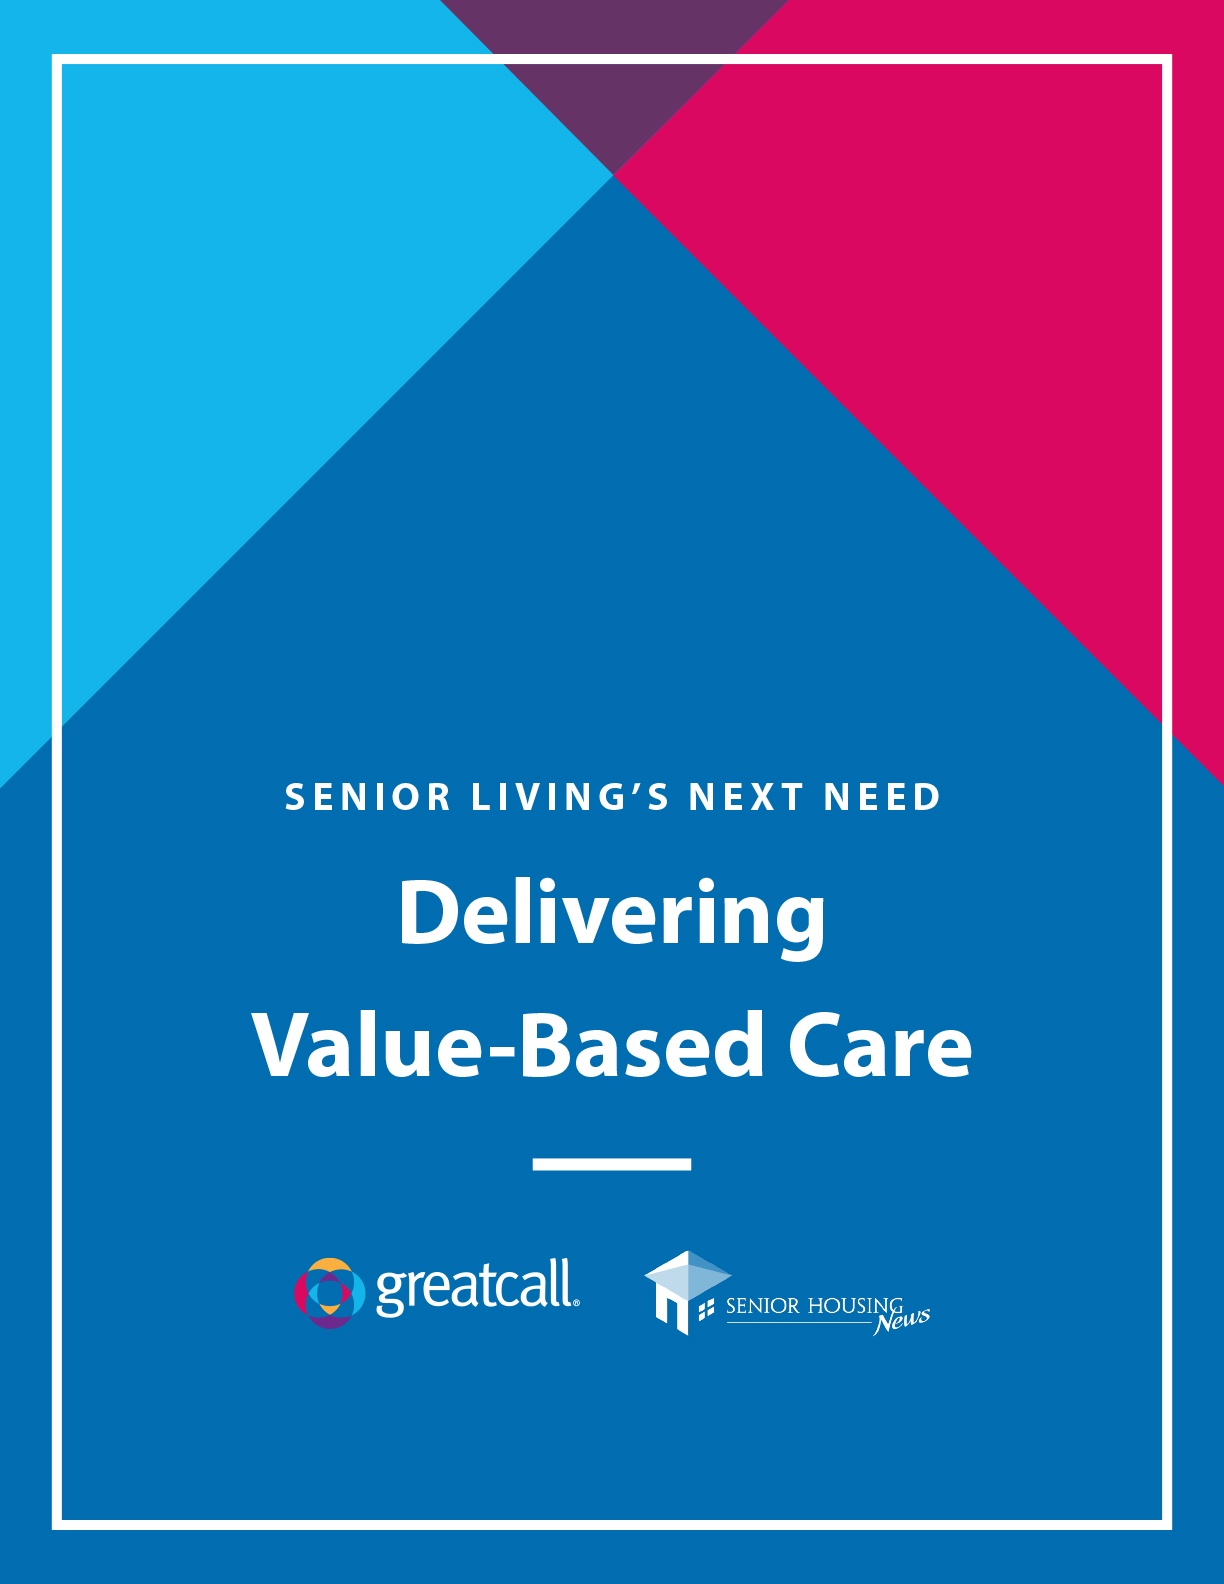 Senior Living's Next Need: Delivering Value-Based Care